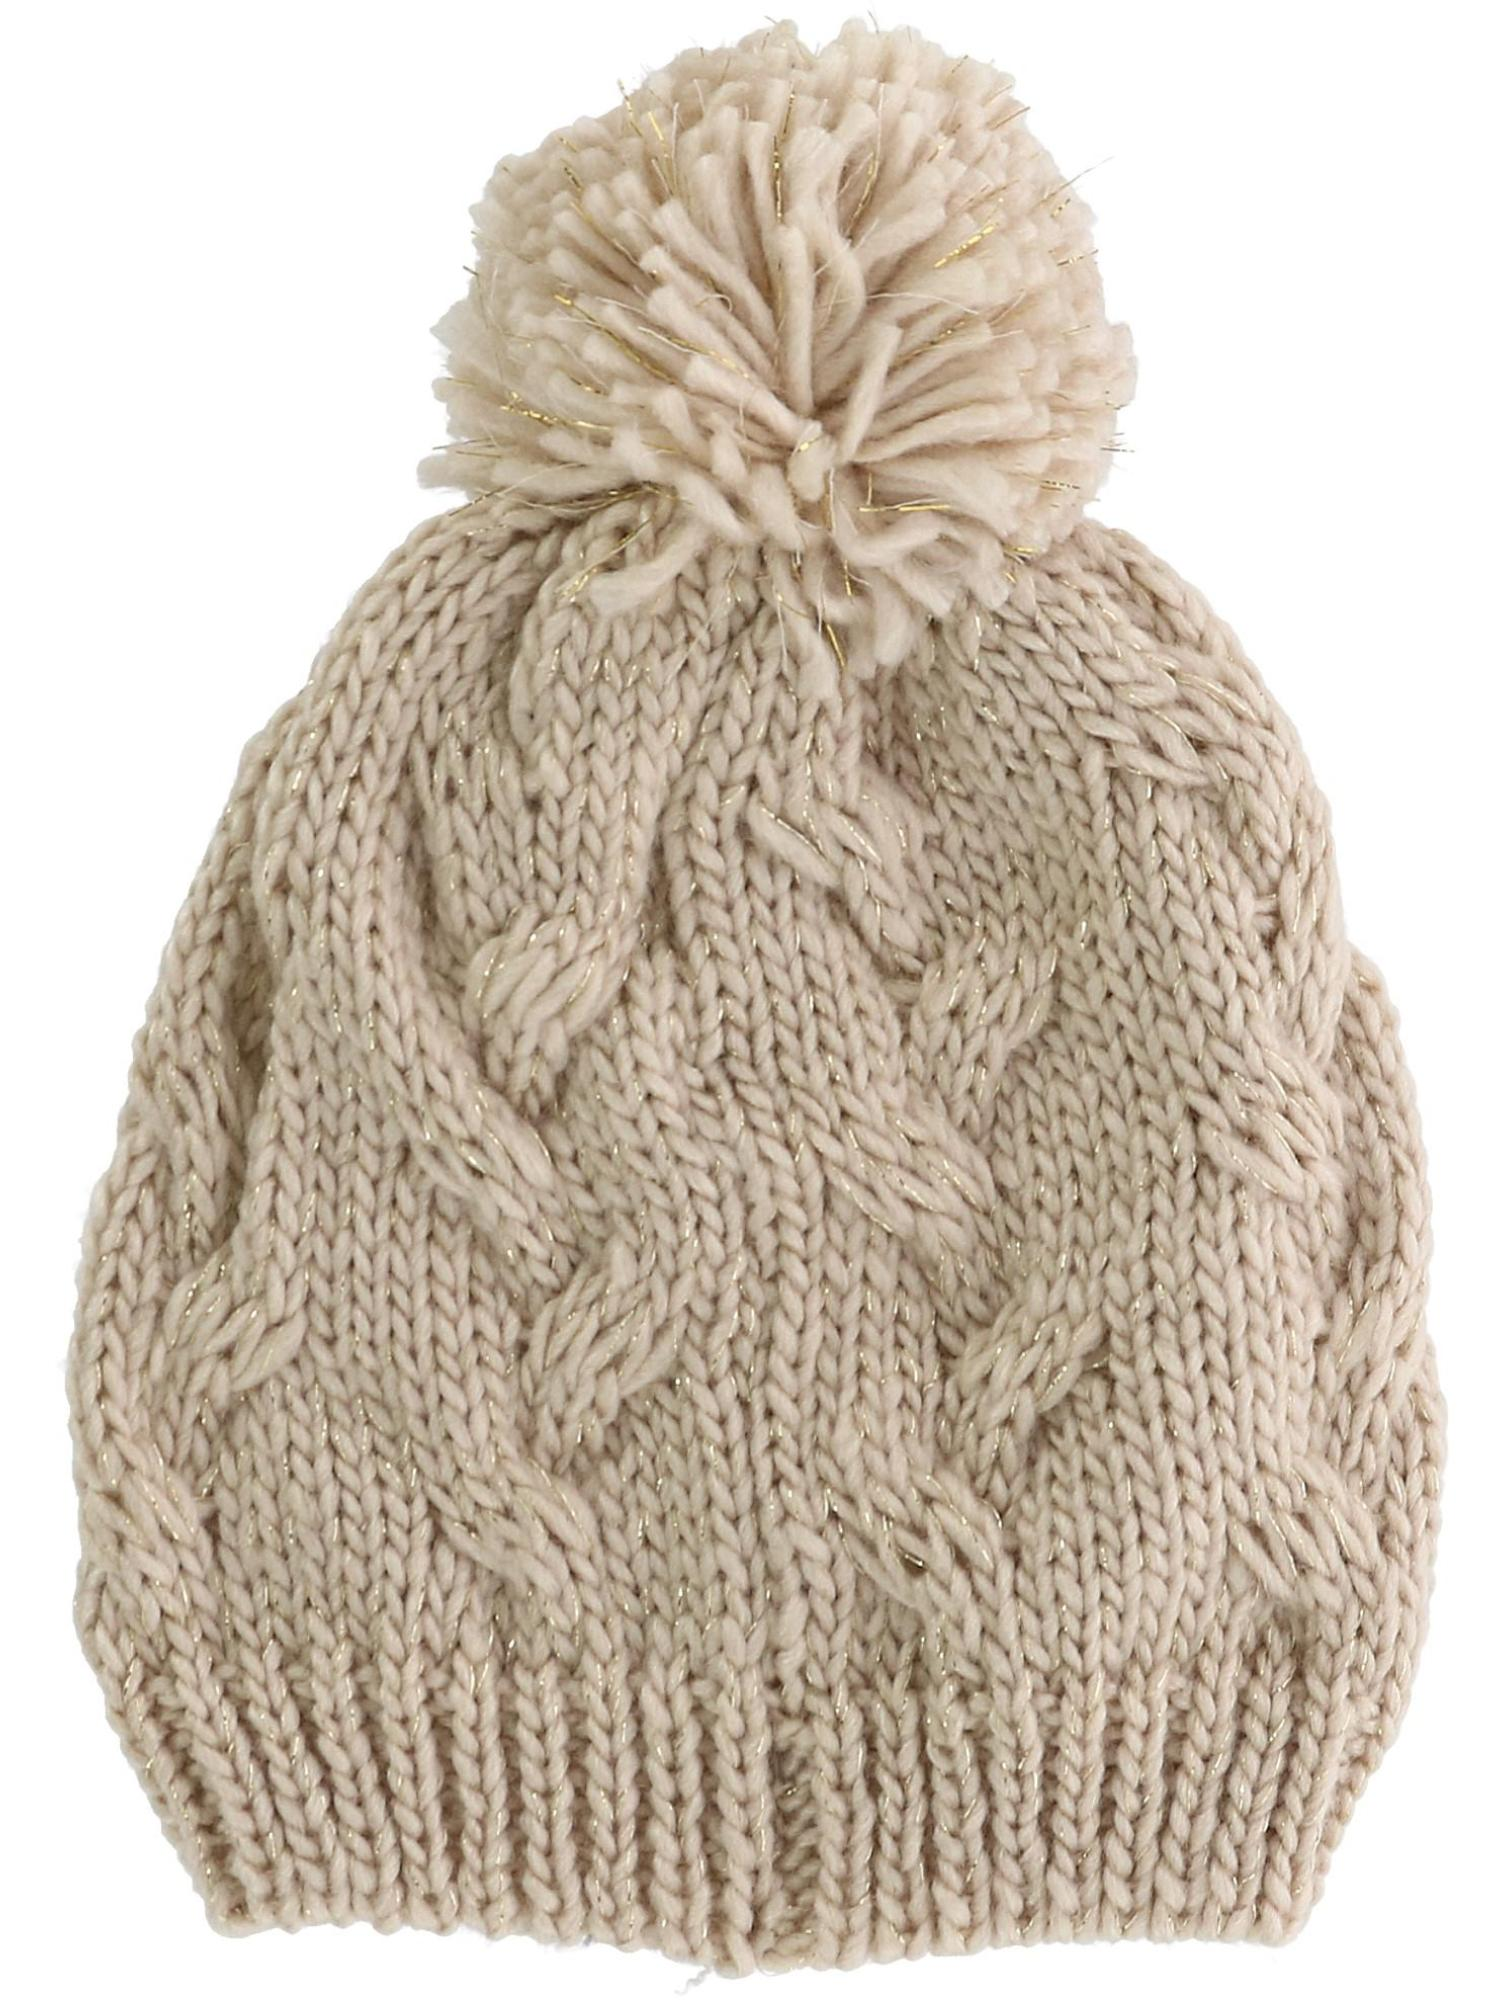 Girls' Cable Knit Winter Hat with Pom